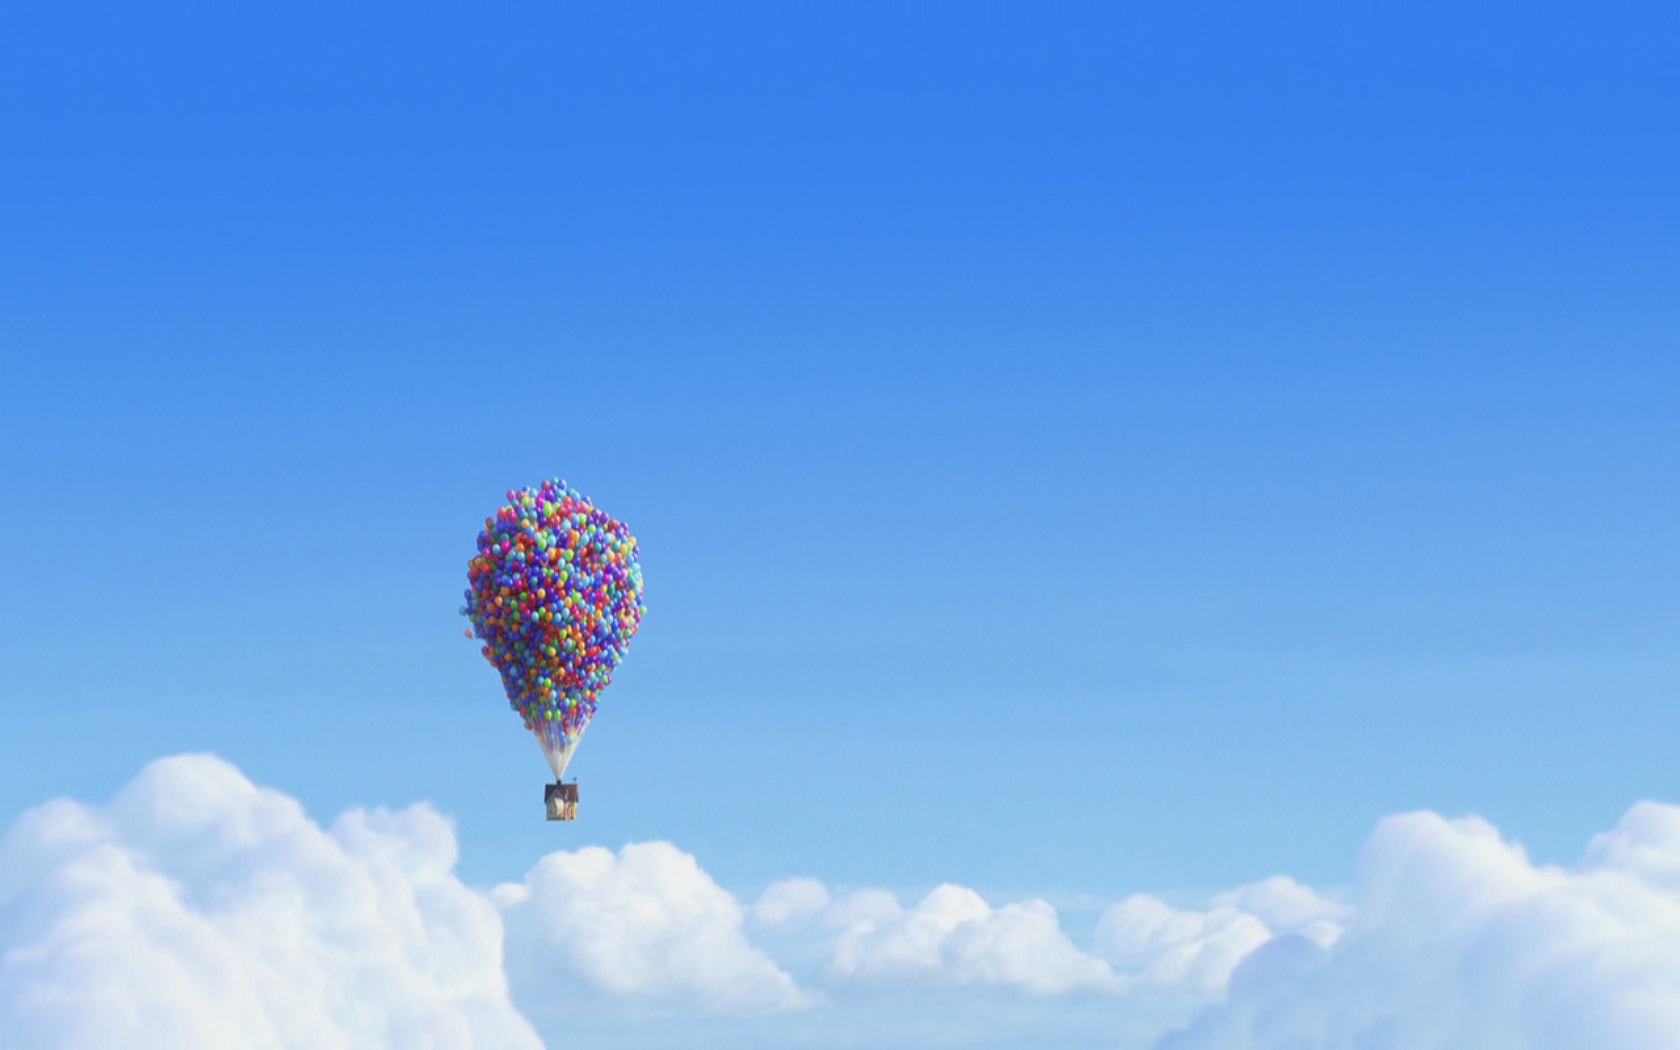 Disney Pixar Wallpaper - WallpaperSafari